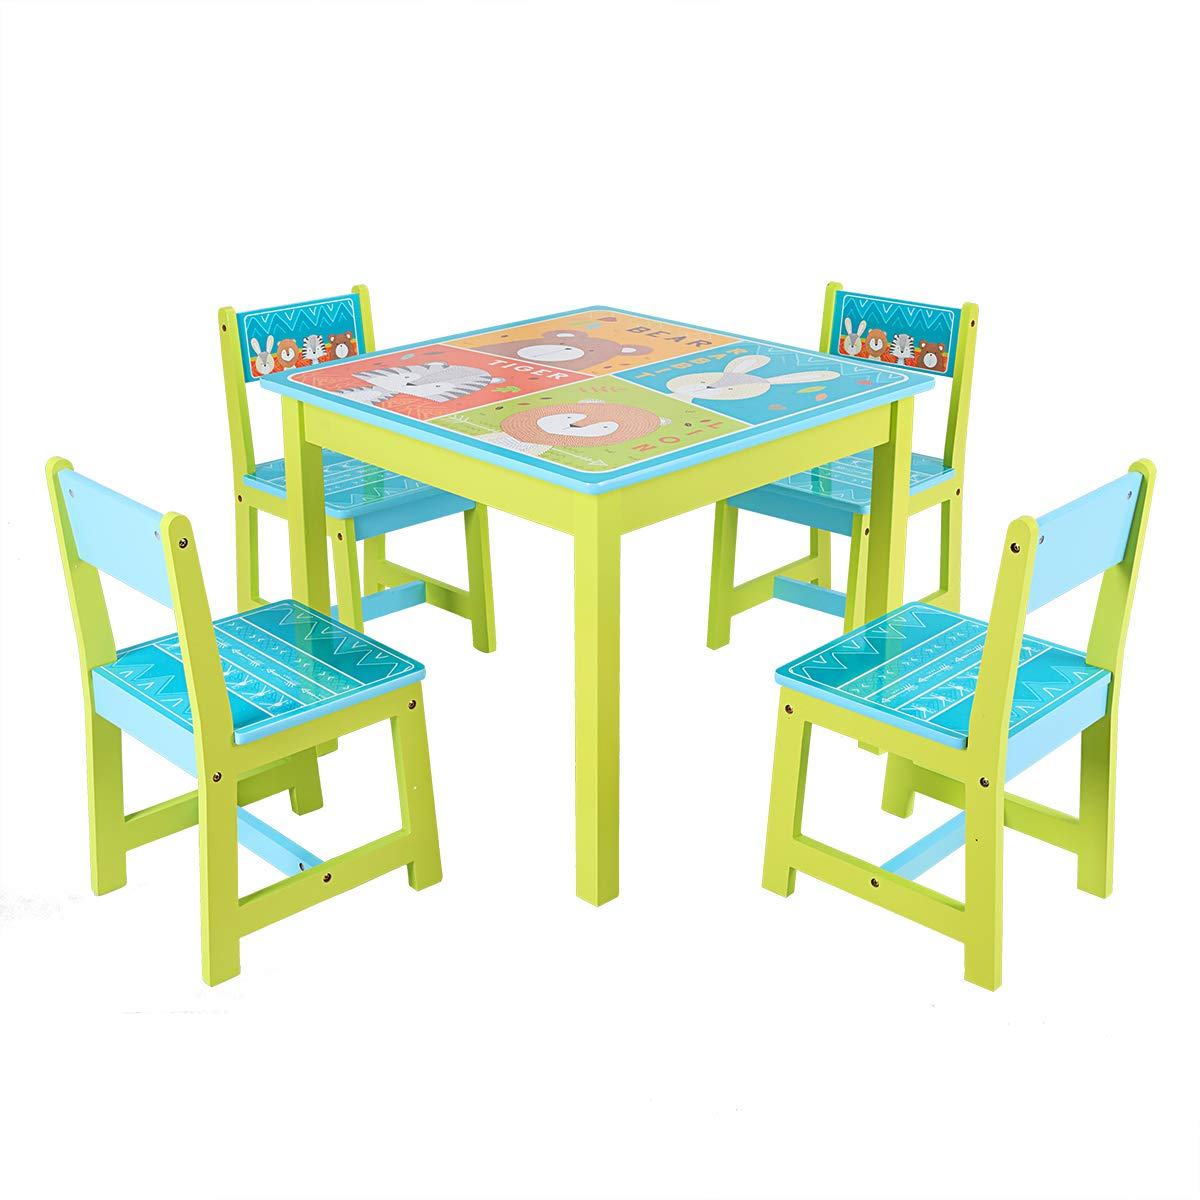 BABY JOY Kids Table and 4 Chairs Set, Wooden MDF Desk for Studying Playing Dining Indoors & Outdoors Activity, Toddler Baby Gift Desk Furniture Cartoon Pattern (Table and 4 Chairs) by BABY JOY (Image #9)